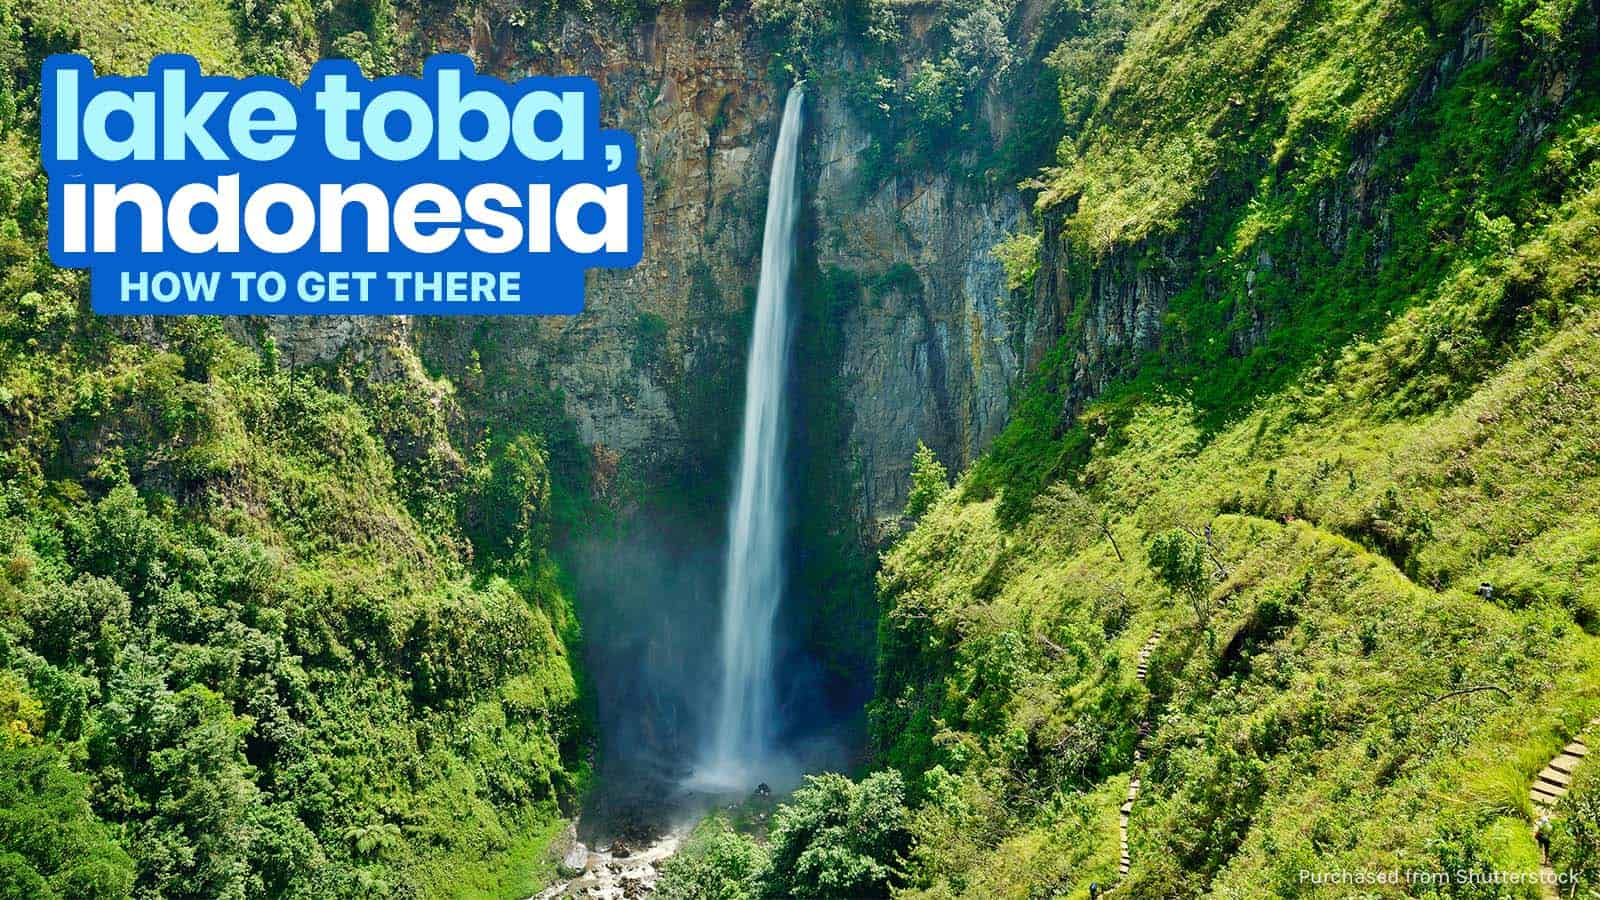 HOW TO GET TO LAKE TOBA, INDONESIA